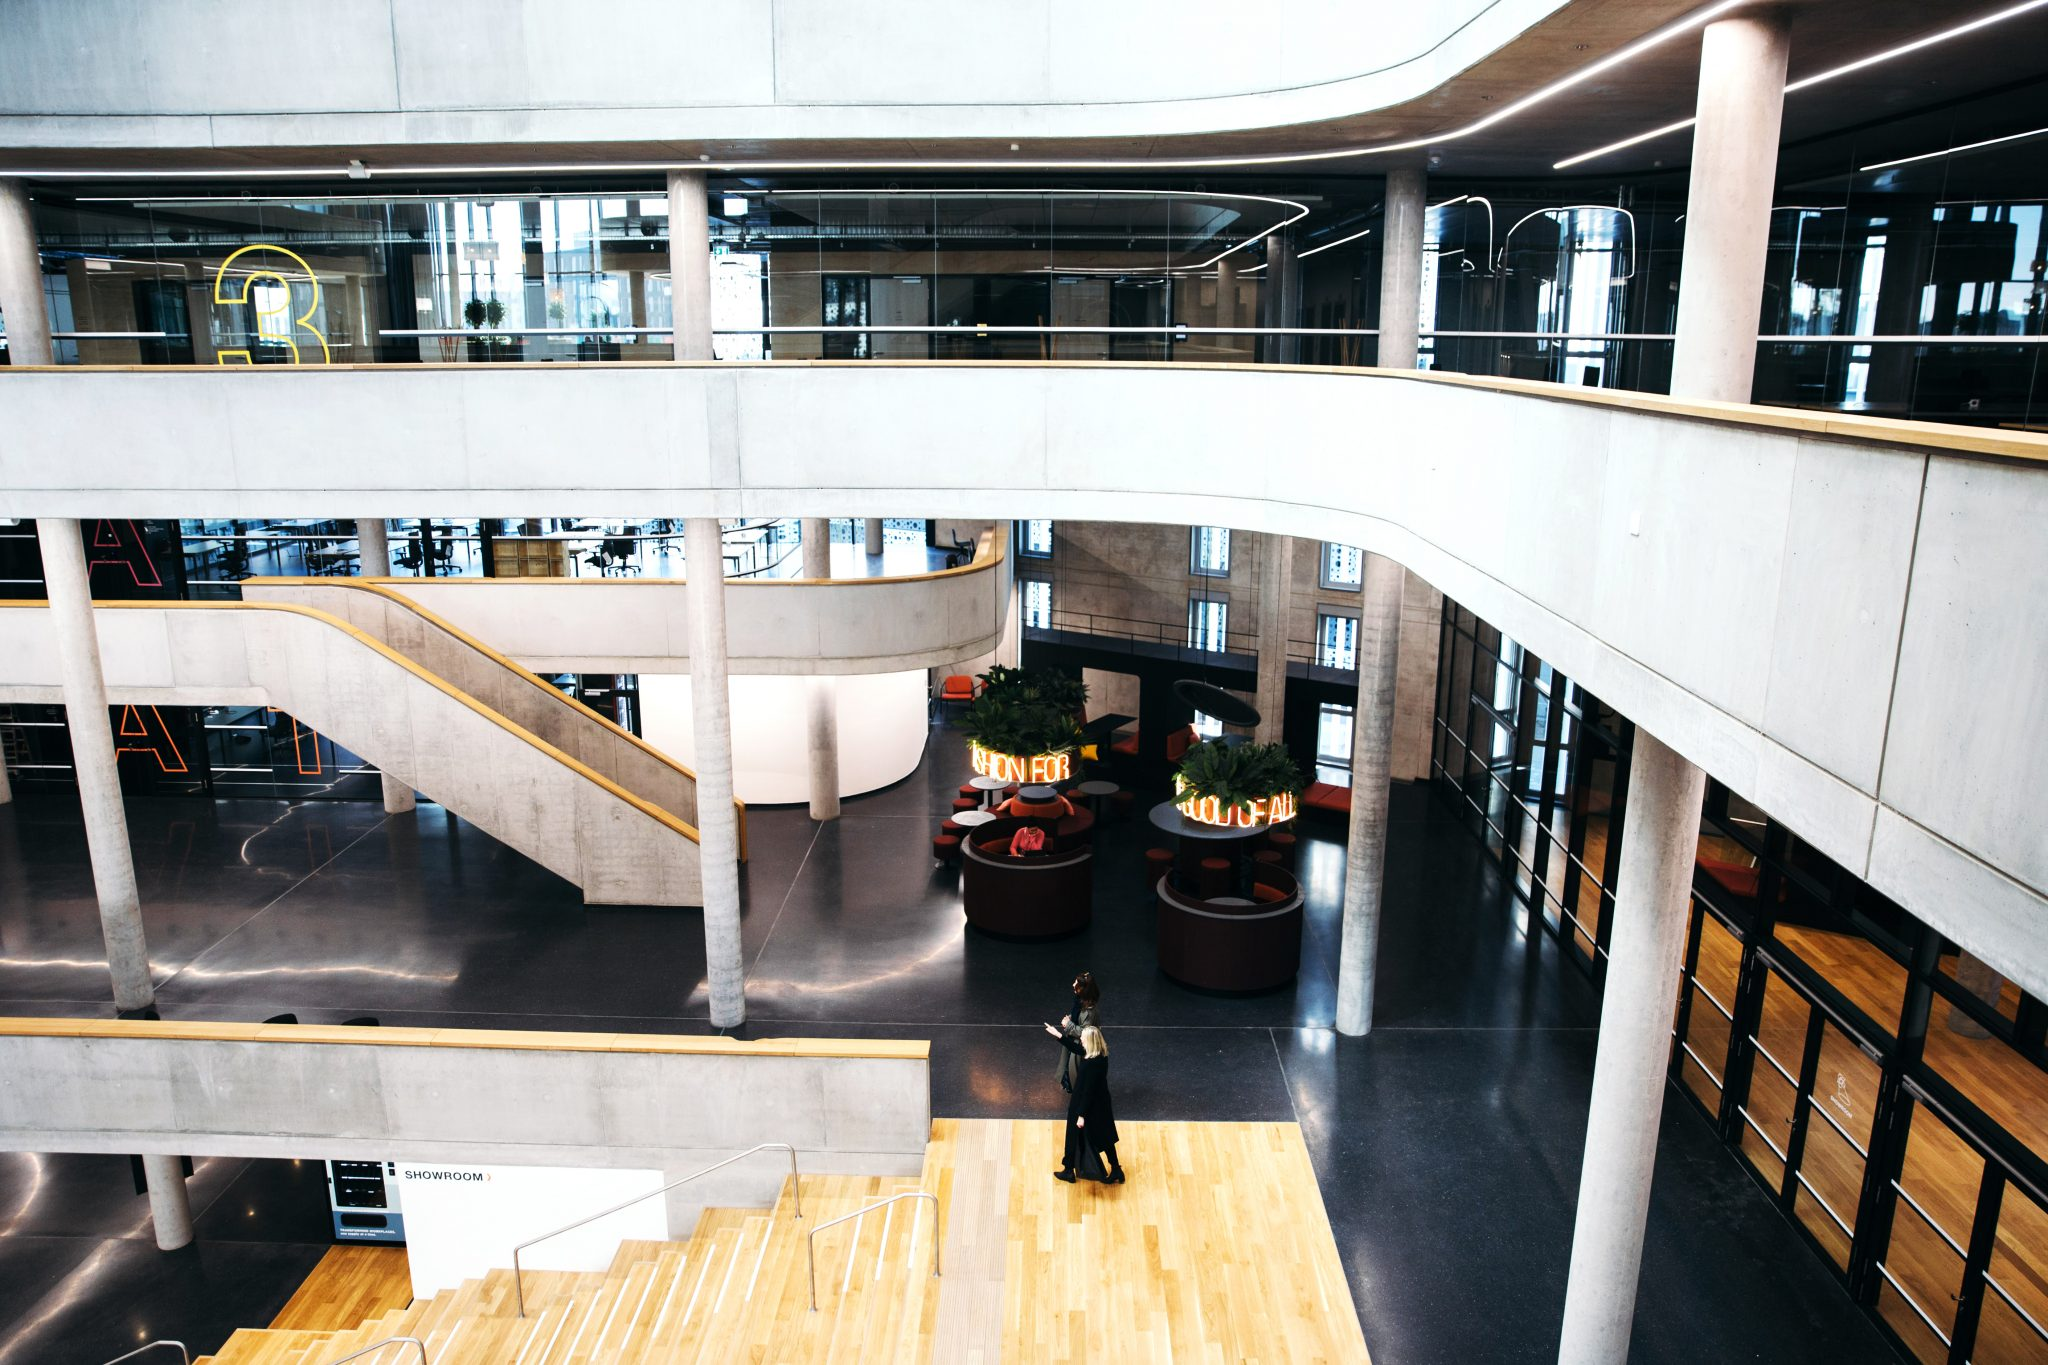 Zalando HQ - the company continues to grow its pre-owned fashion platforms